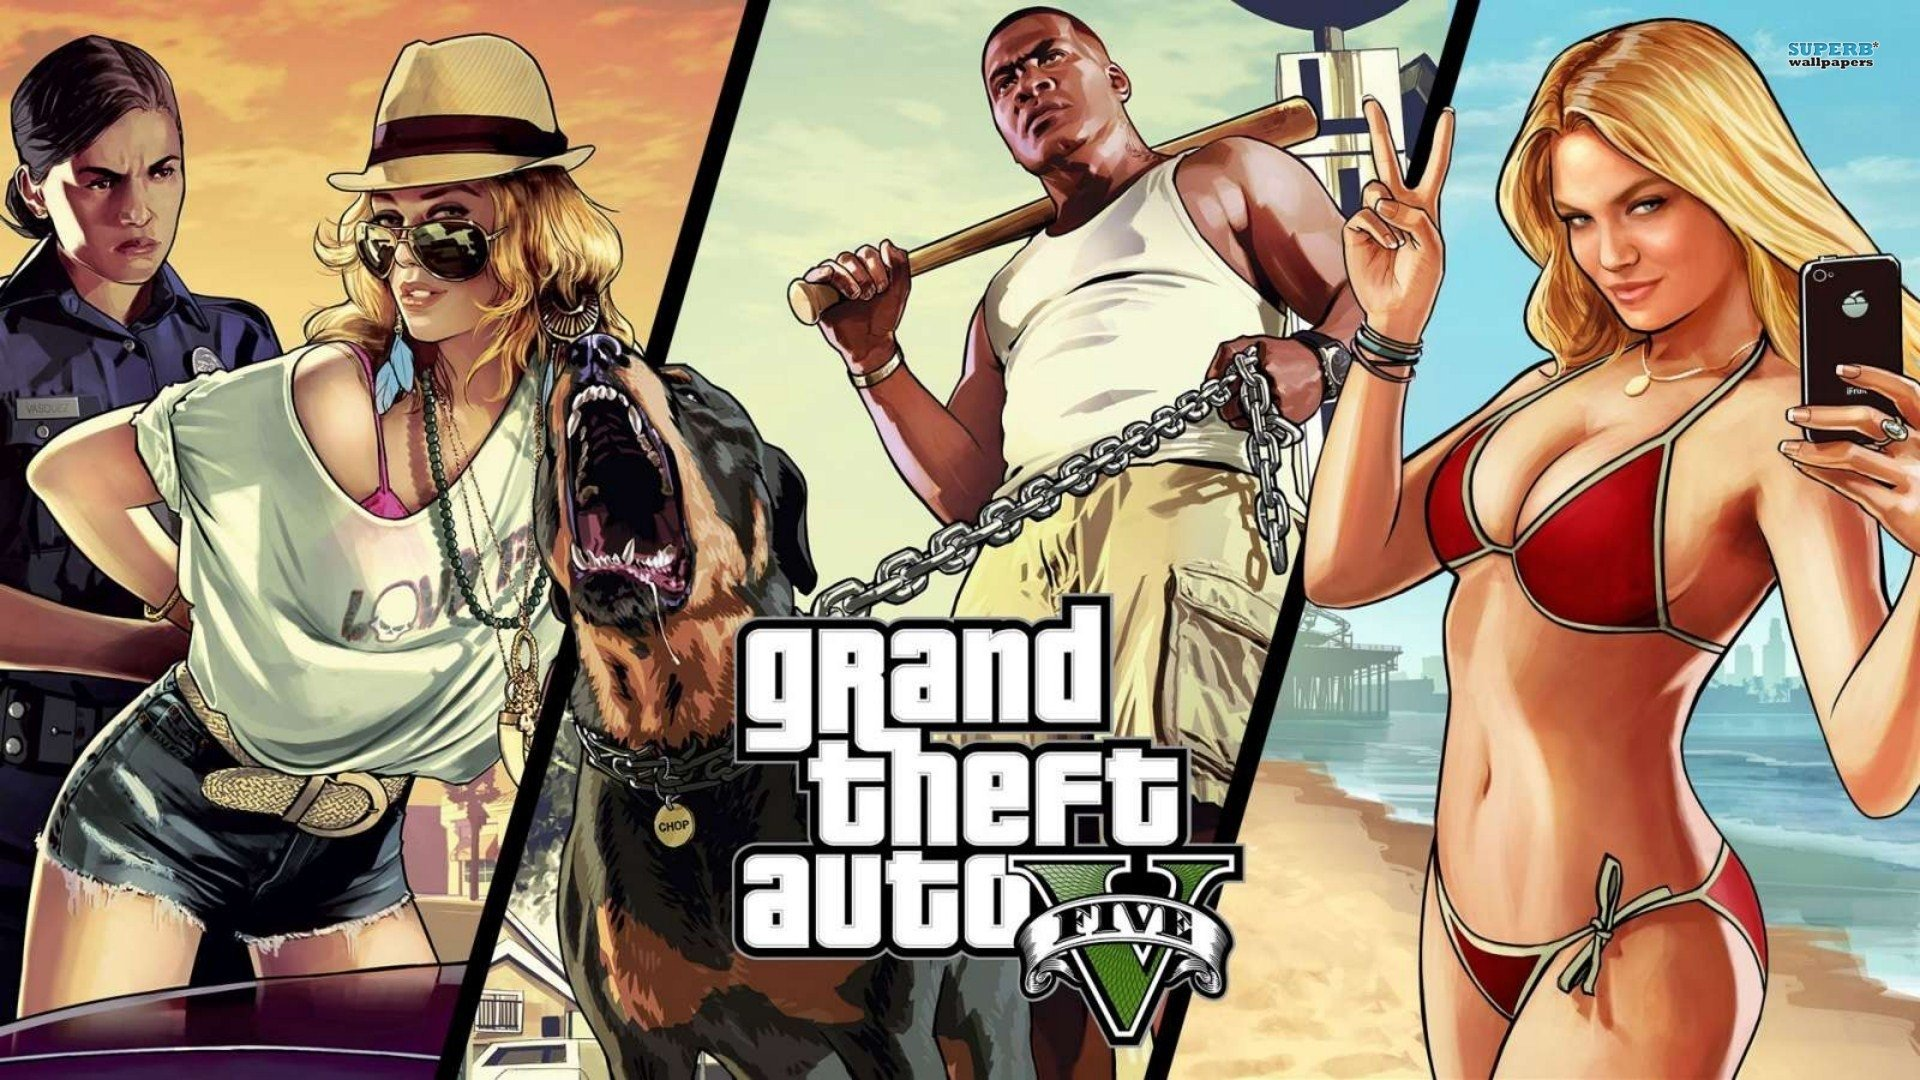 Grand Theft Auto HD Desktop Wallpapers for